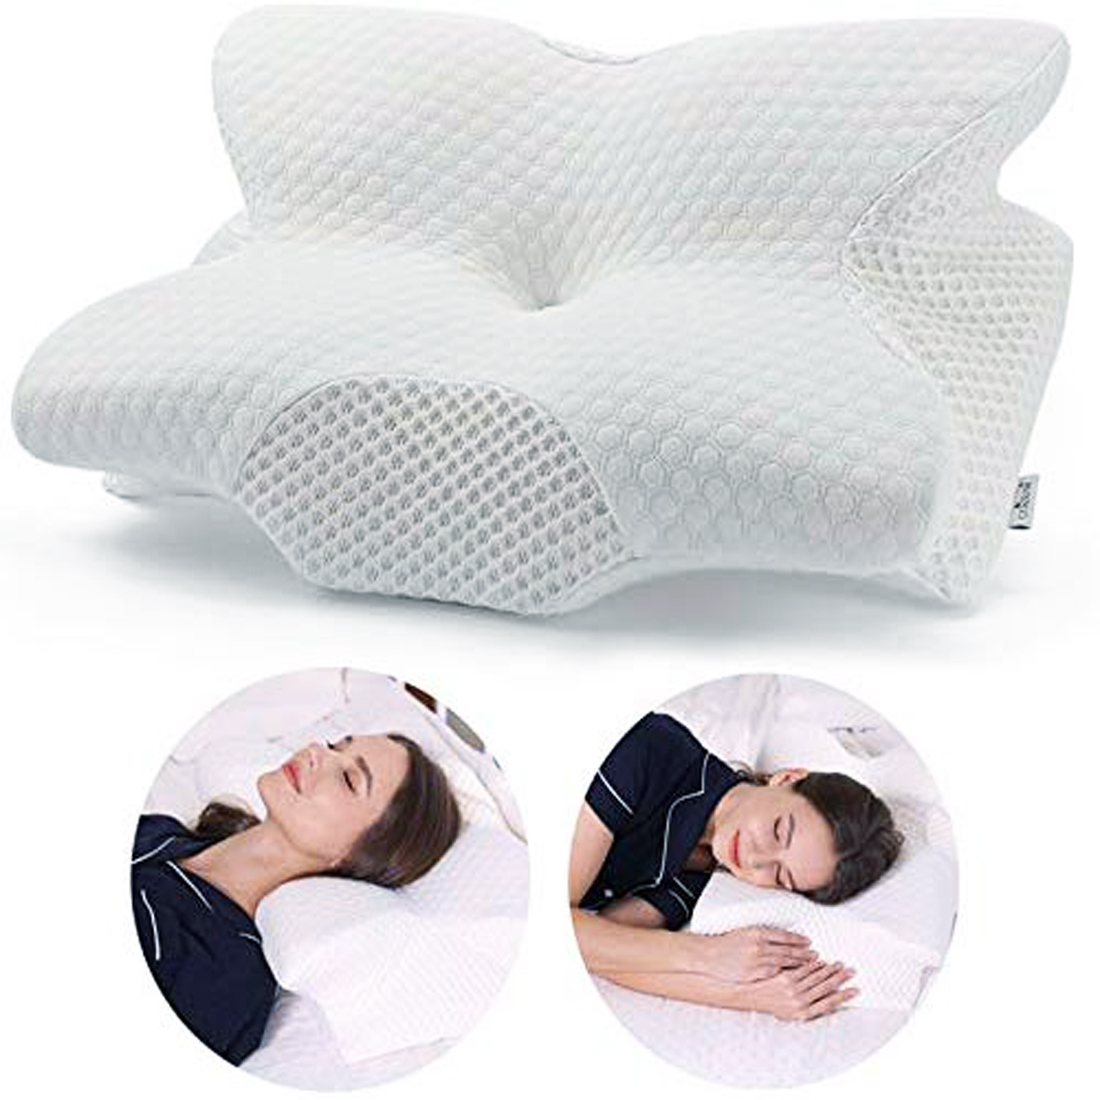 best pillow for neck and shoulder pain coisum